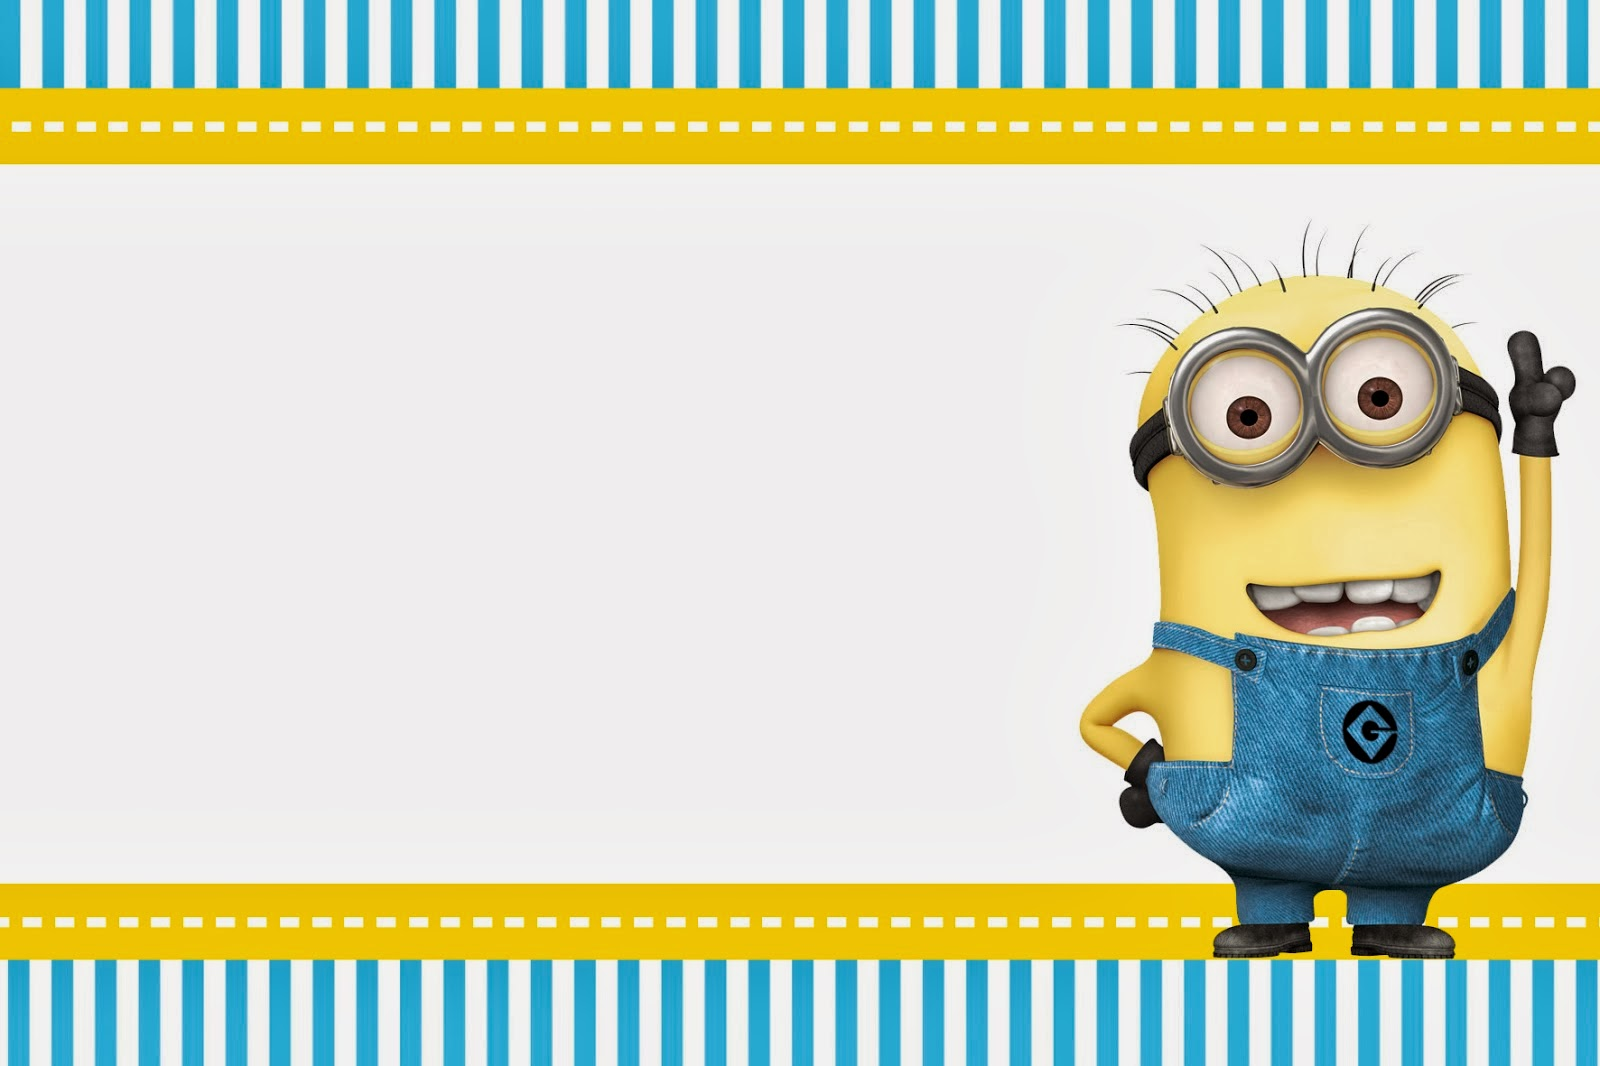 Minion Birthday Invitation and get inspiration to create nice invitation ideas